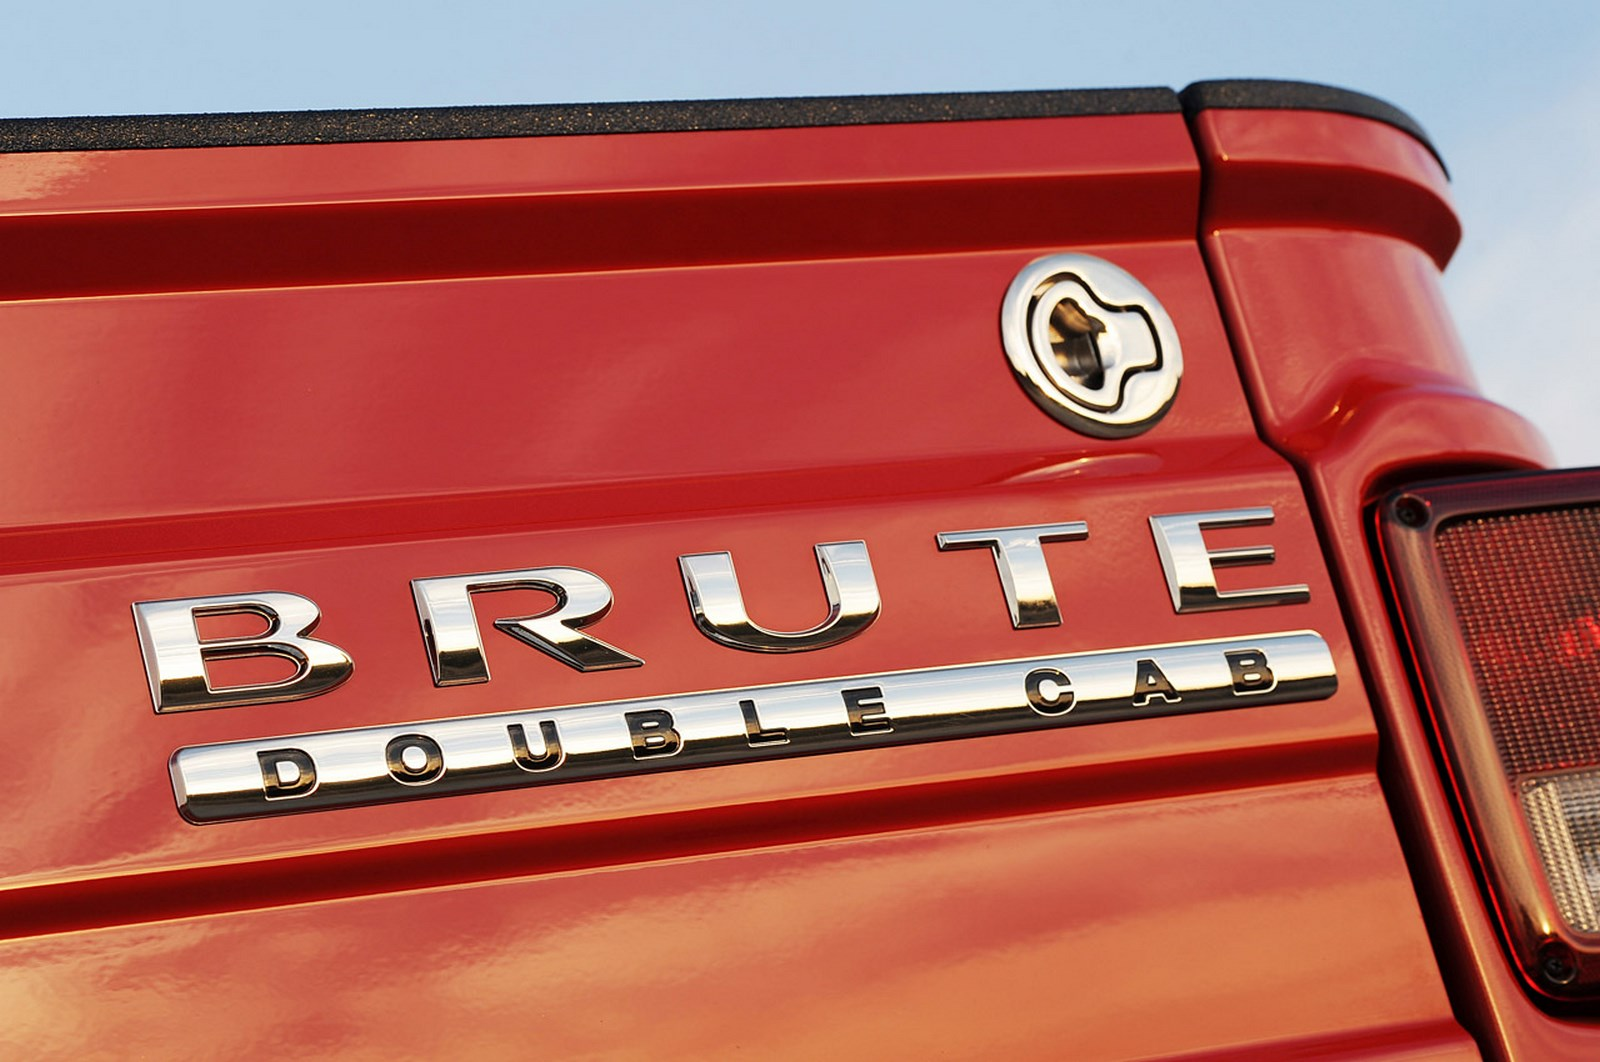 27-aev-brute-double-cab-fd